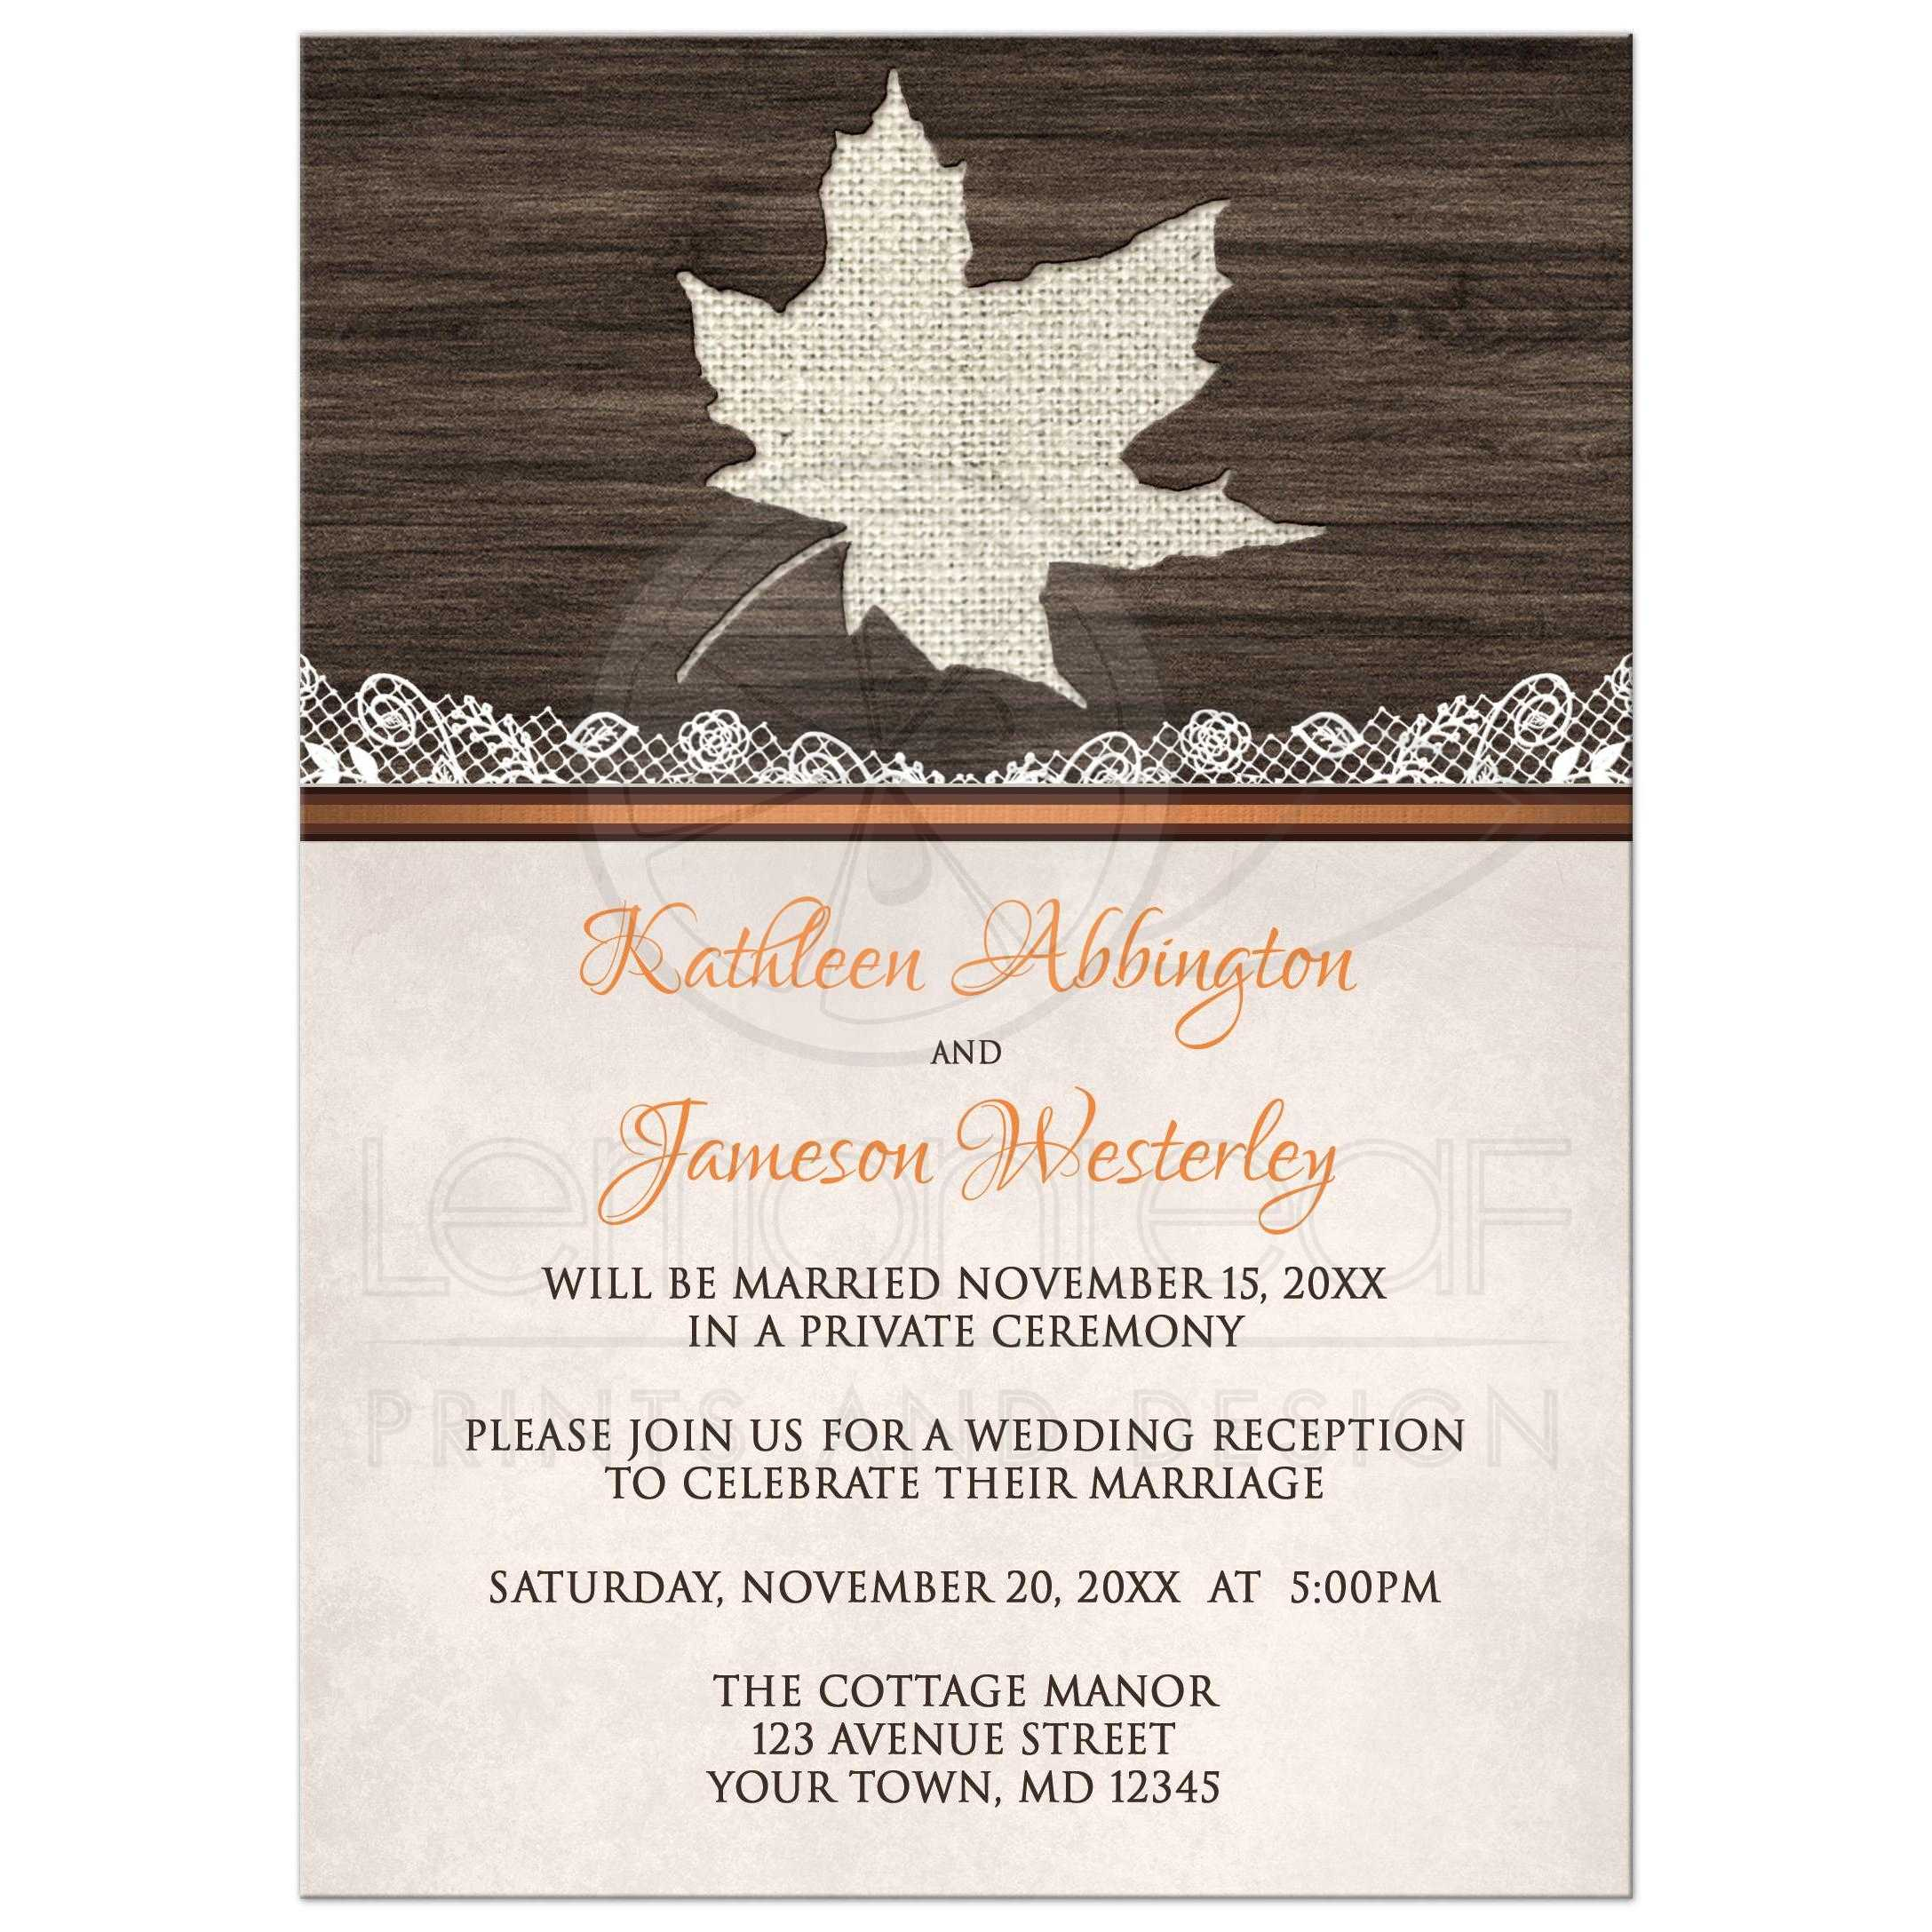 reception only invitations rustic autumn wood leaf orange - Wedding Reception Only Invitations